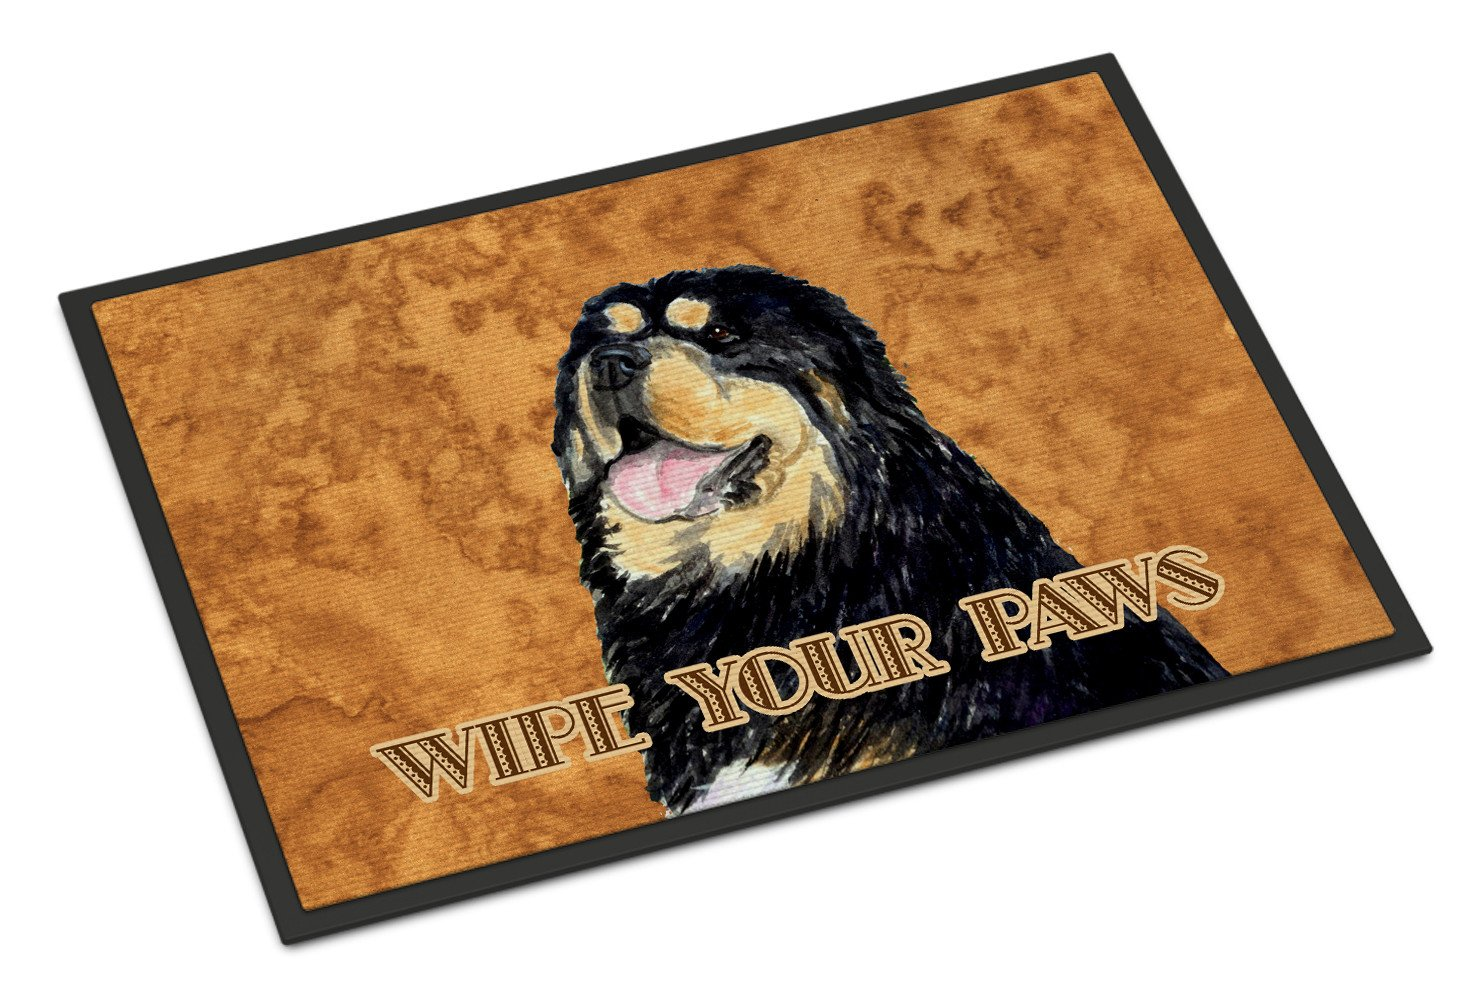 Tibetan Spaniel Wipe your Paws Indoor or Outdoor Mat 18x27 SS4886MAT - the-store.com